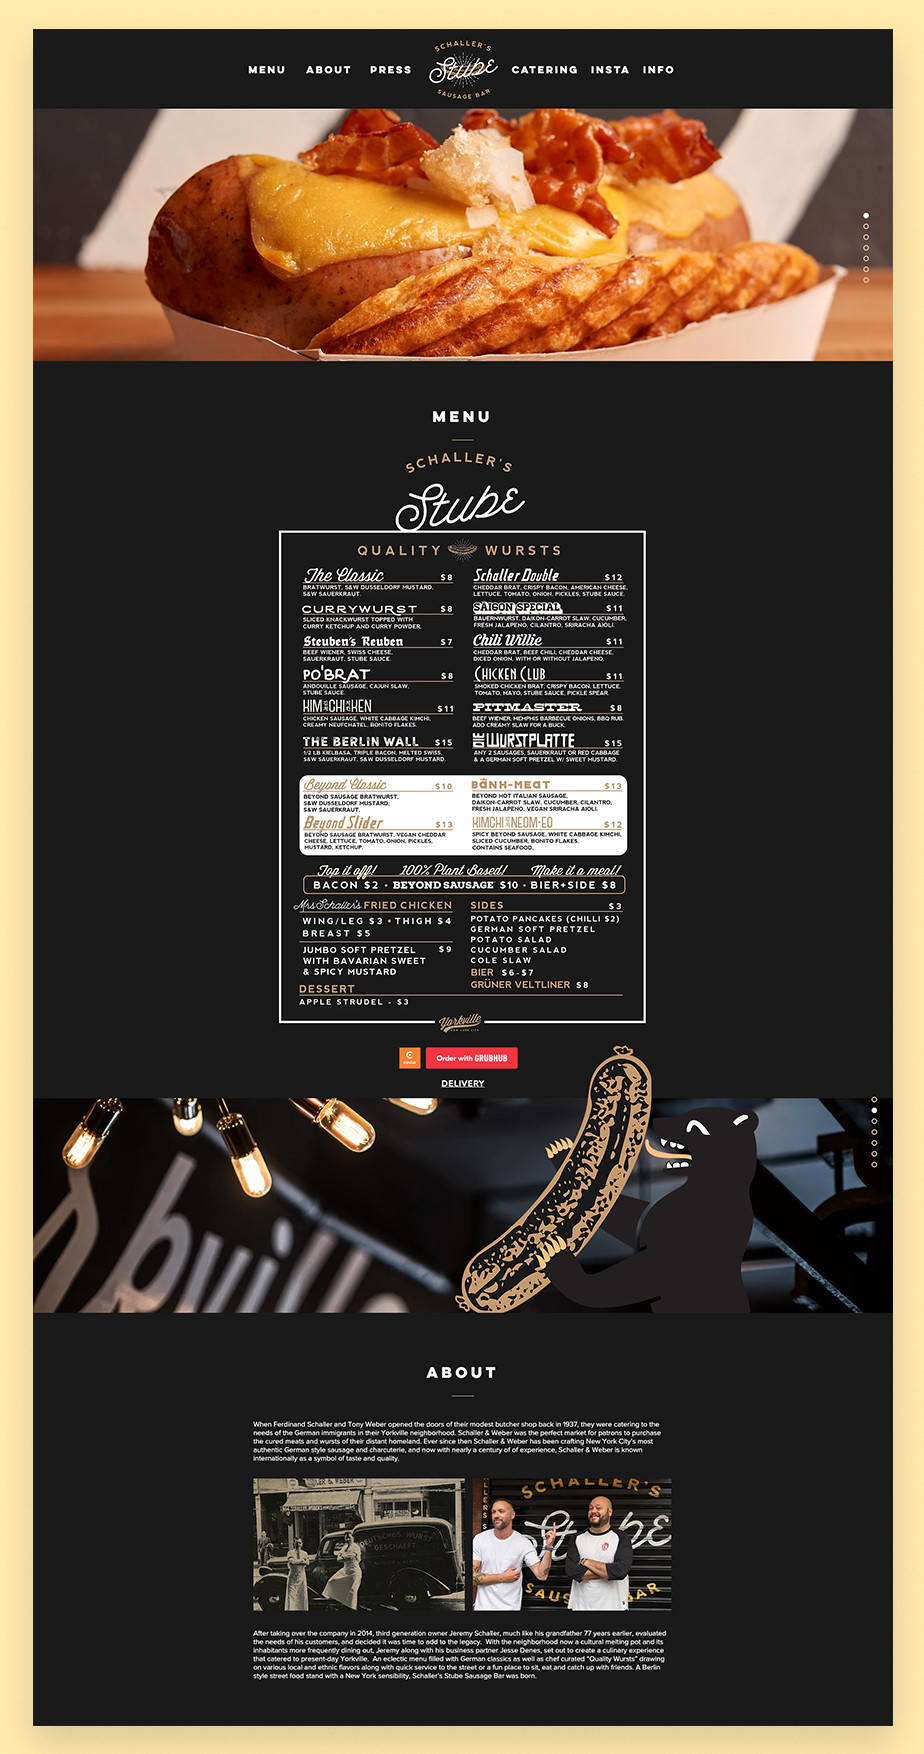 Schaller's Stube restaurant website